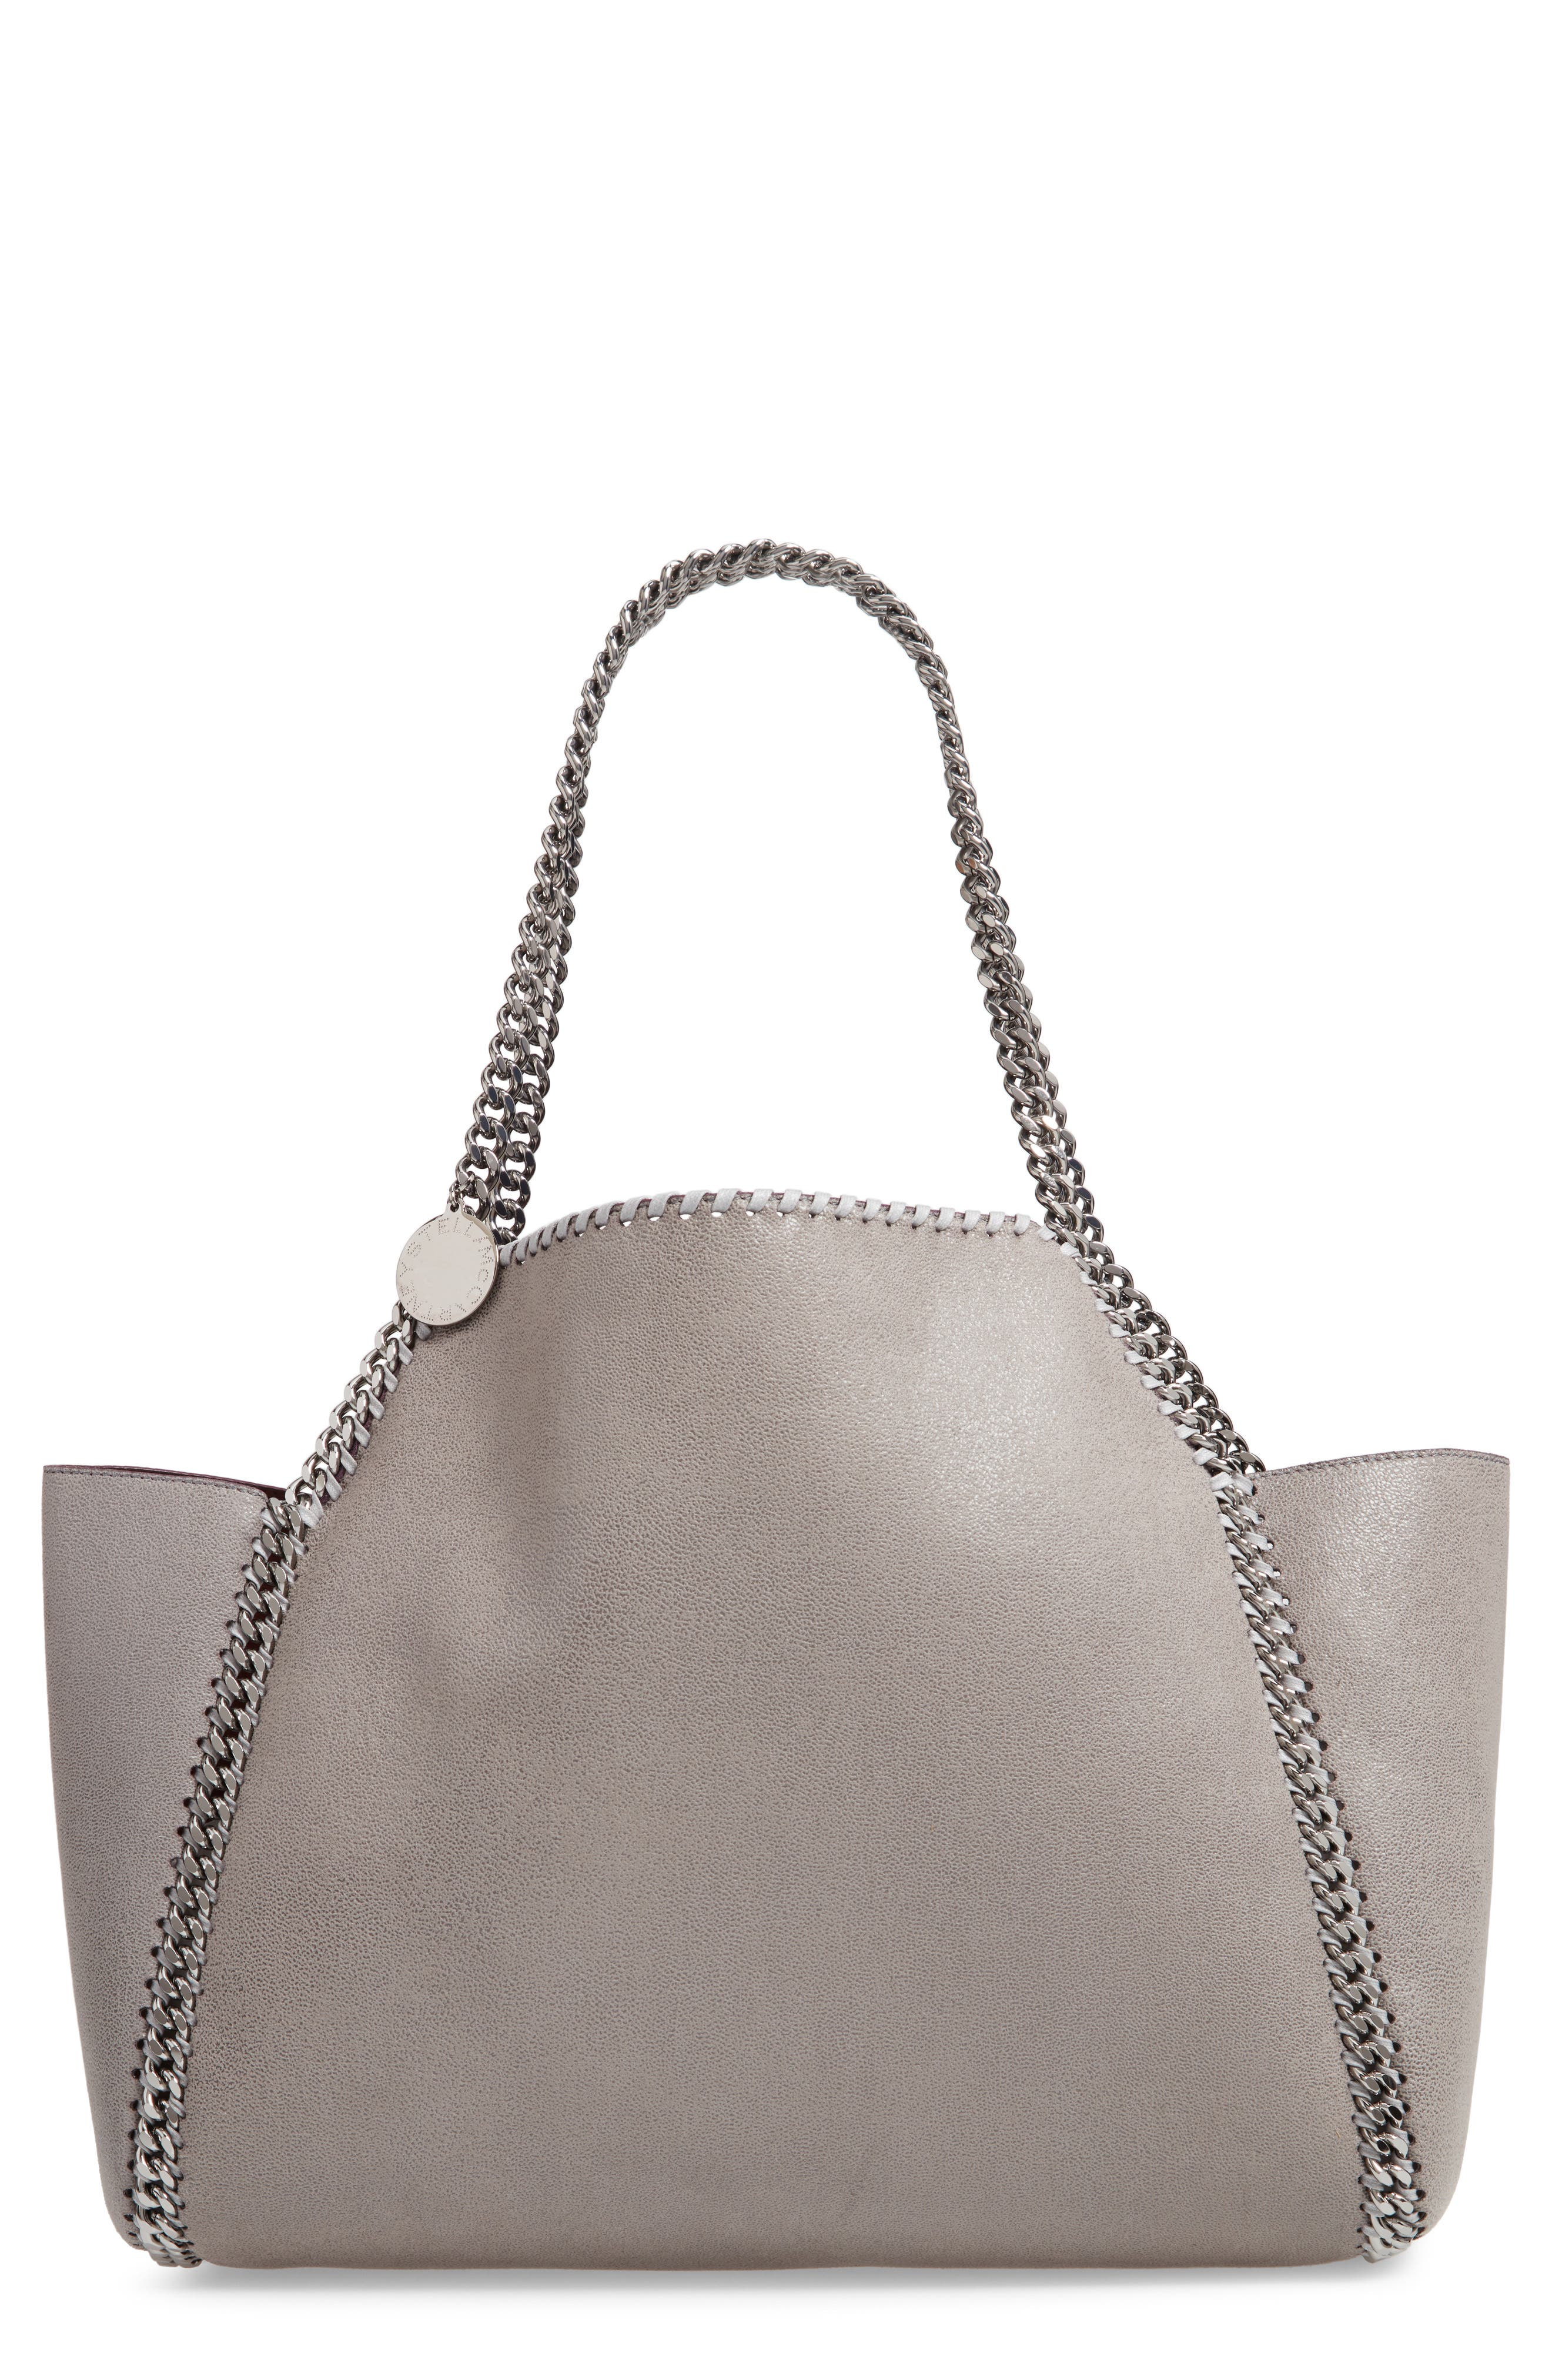 Stella Mccartney Small Oleo Deer Reversible Faux Leather Tote - Grey